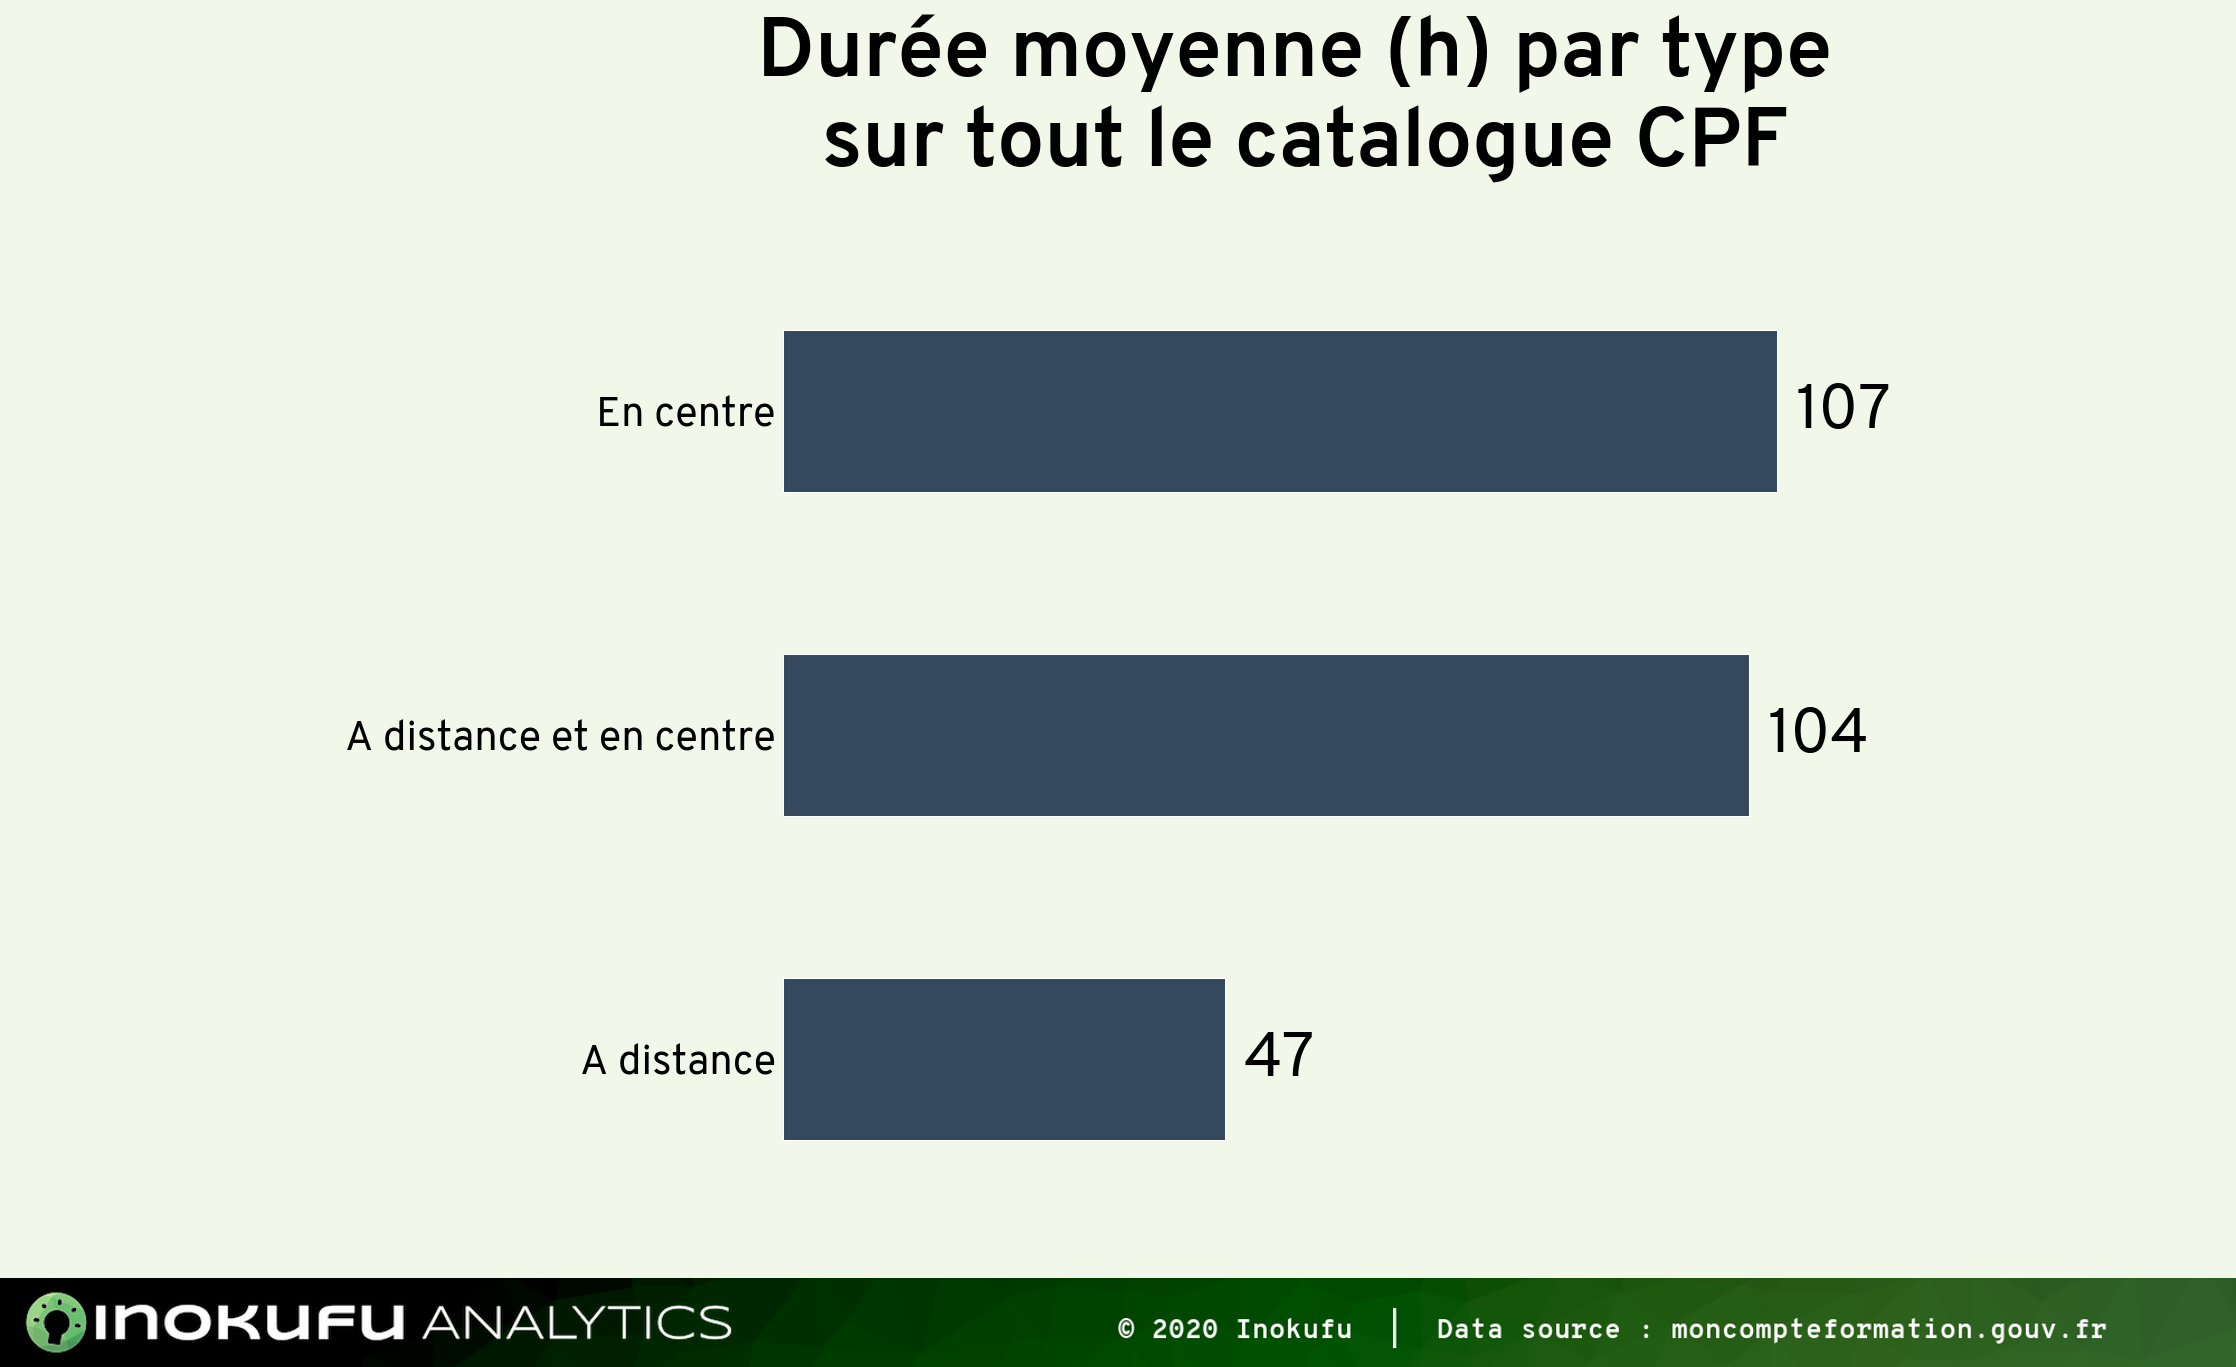 formation CPF durées moyennes